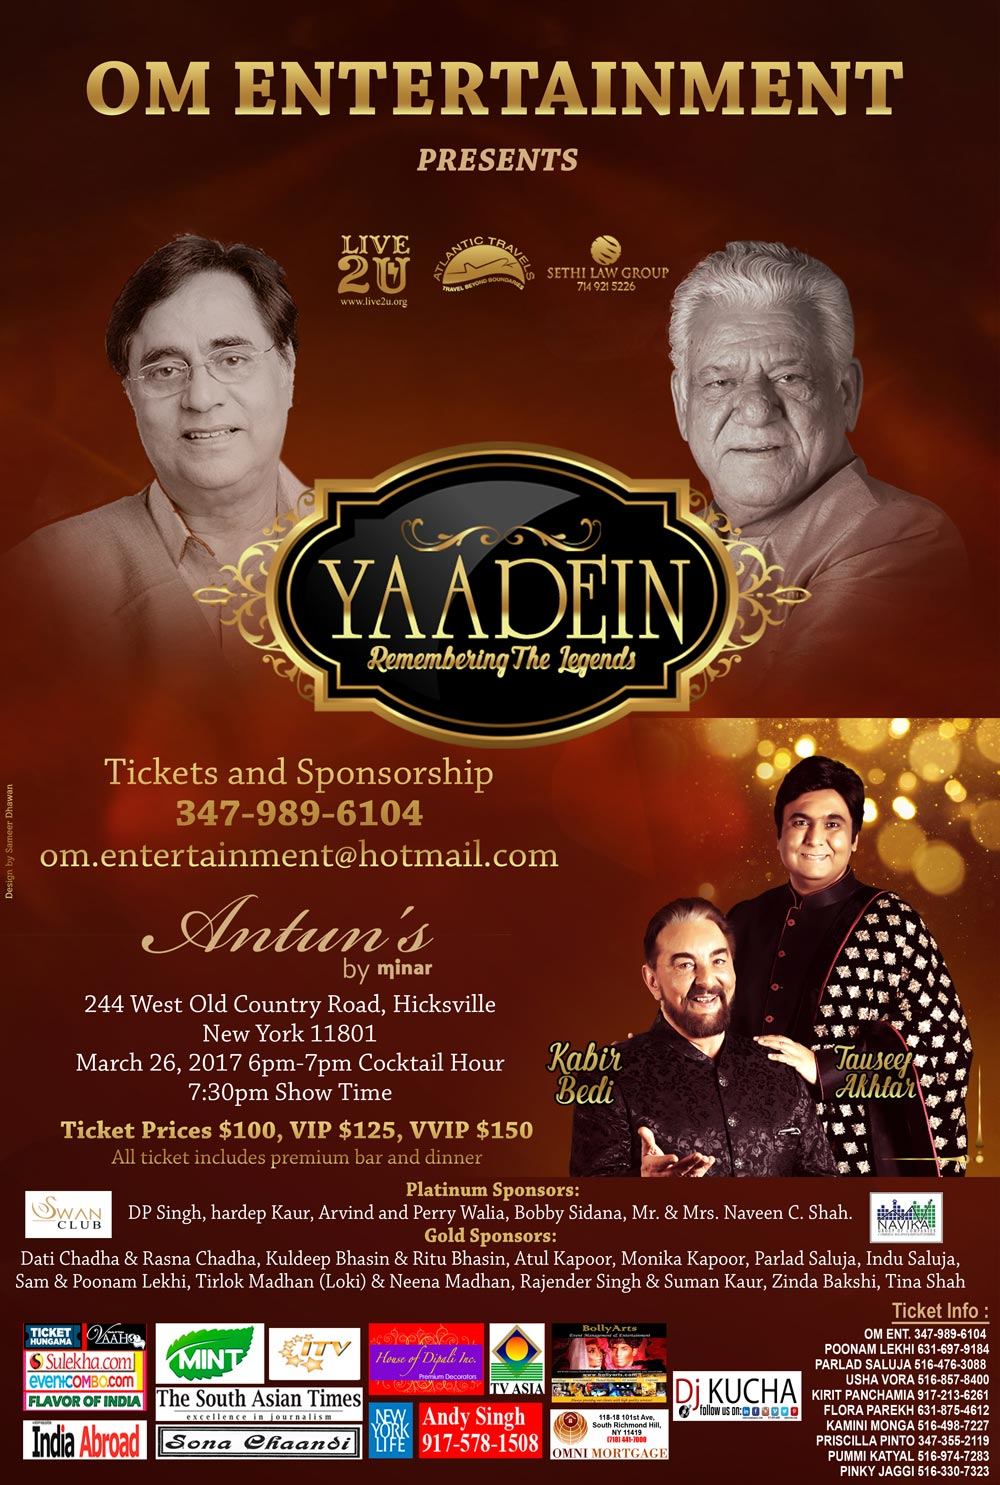 Yaadein Remembering The Legends in New York Featuring Kabir Bedi and Tauseef Akhtar